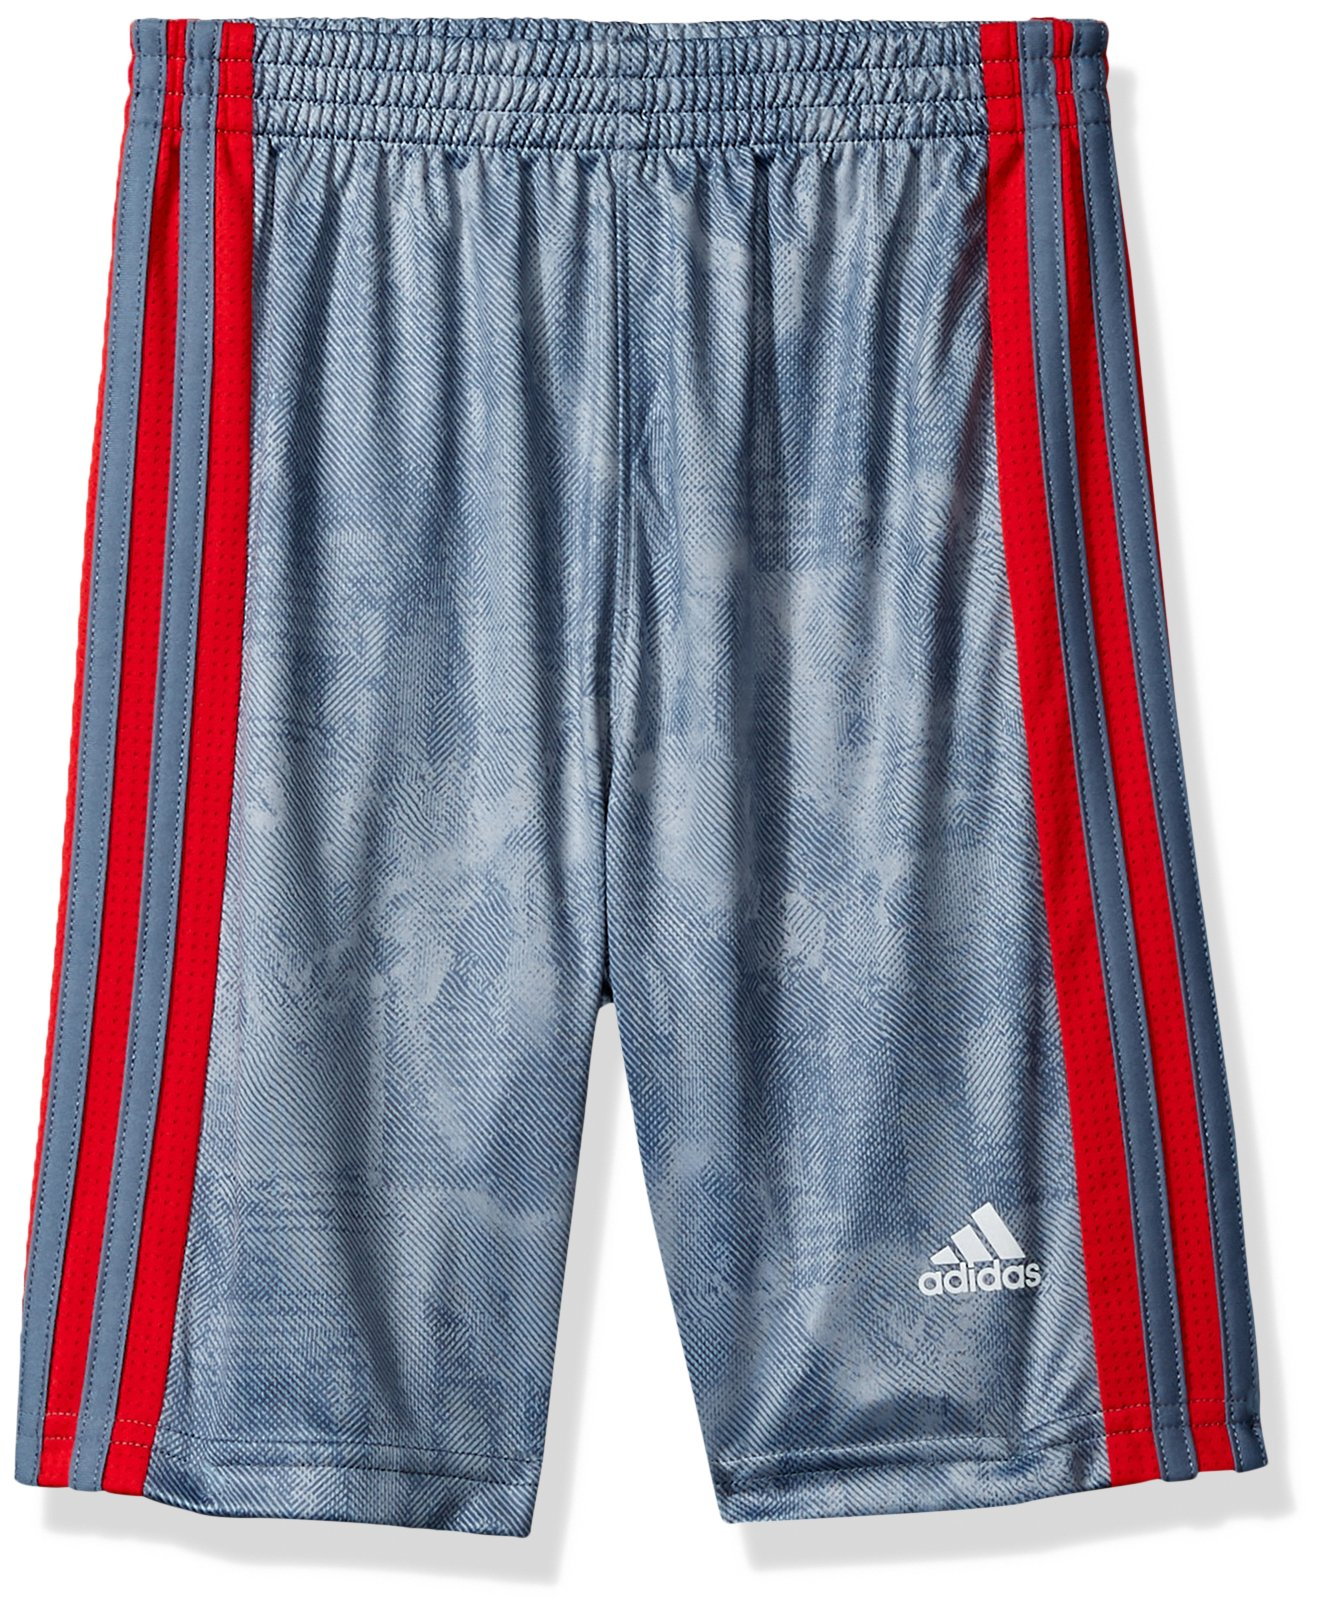 526d4cada2b0 Galleon - Adidas Boys' Toddler Athletic Short, Gray, 3T